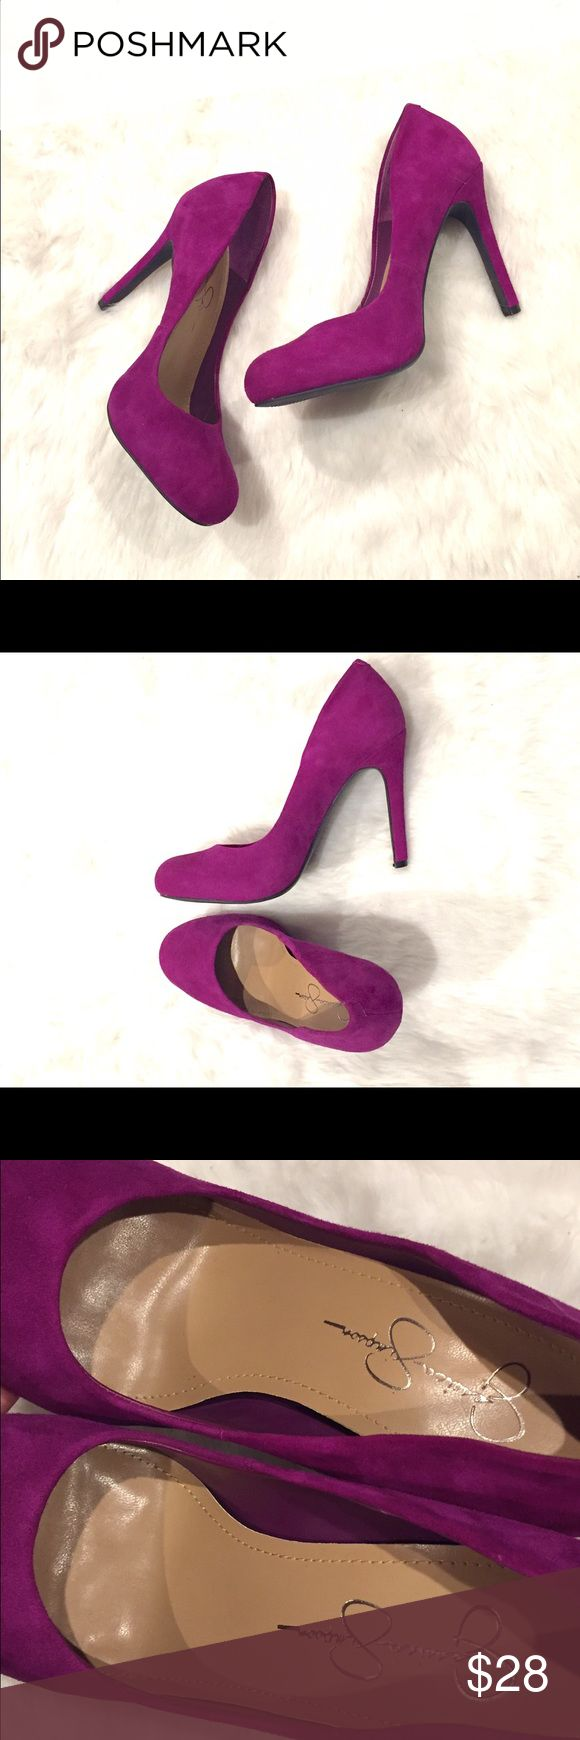 """Jessica Simpson NWOT suede magenta stilettos These suede magenta heels by Jessica Simpson have never been worn outside, only tried on, and are in like-new condition (see pics). Size 7B/37, 4"""" heels.  ❌trades✅bundle discount✅make offer❣ Jessica Simpson Shoes Heels"""